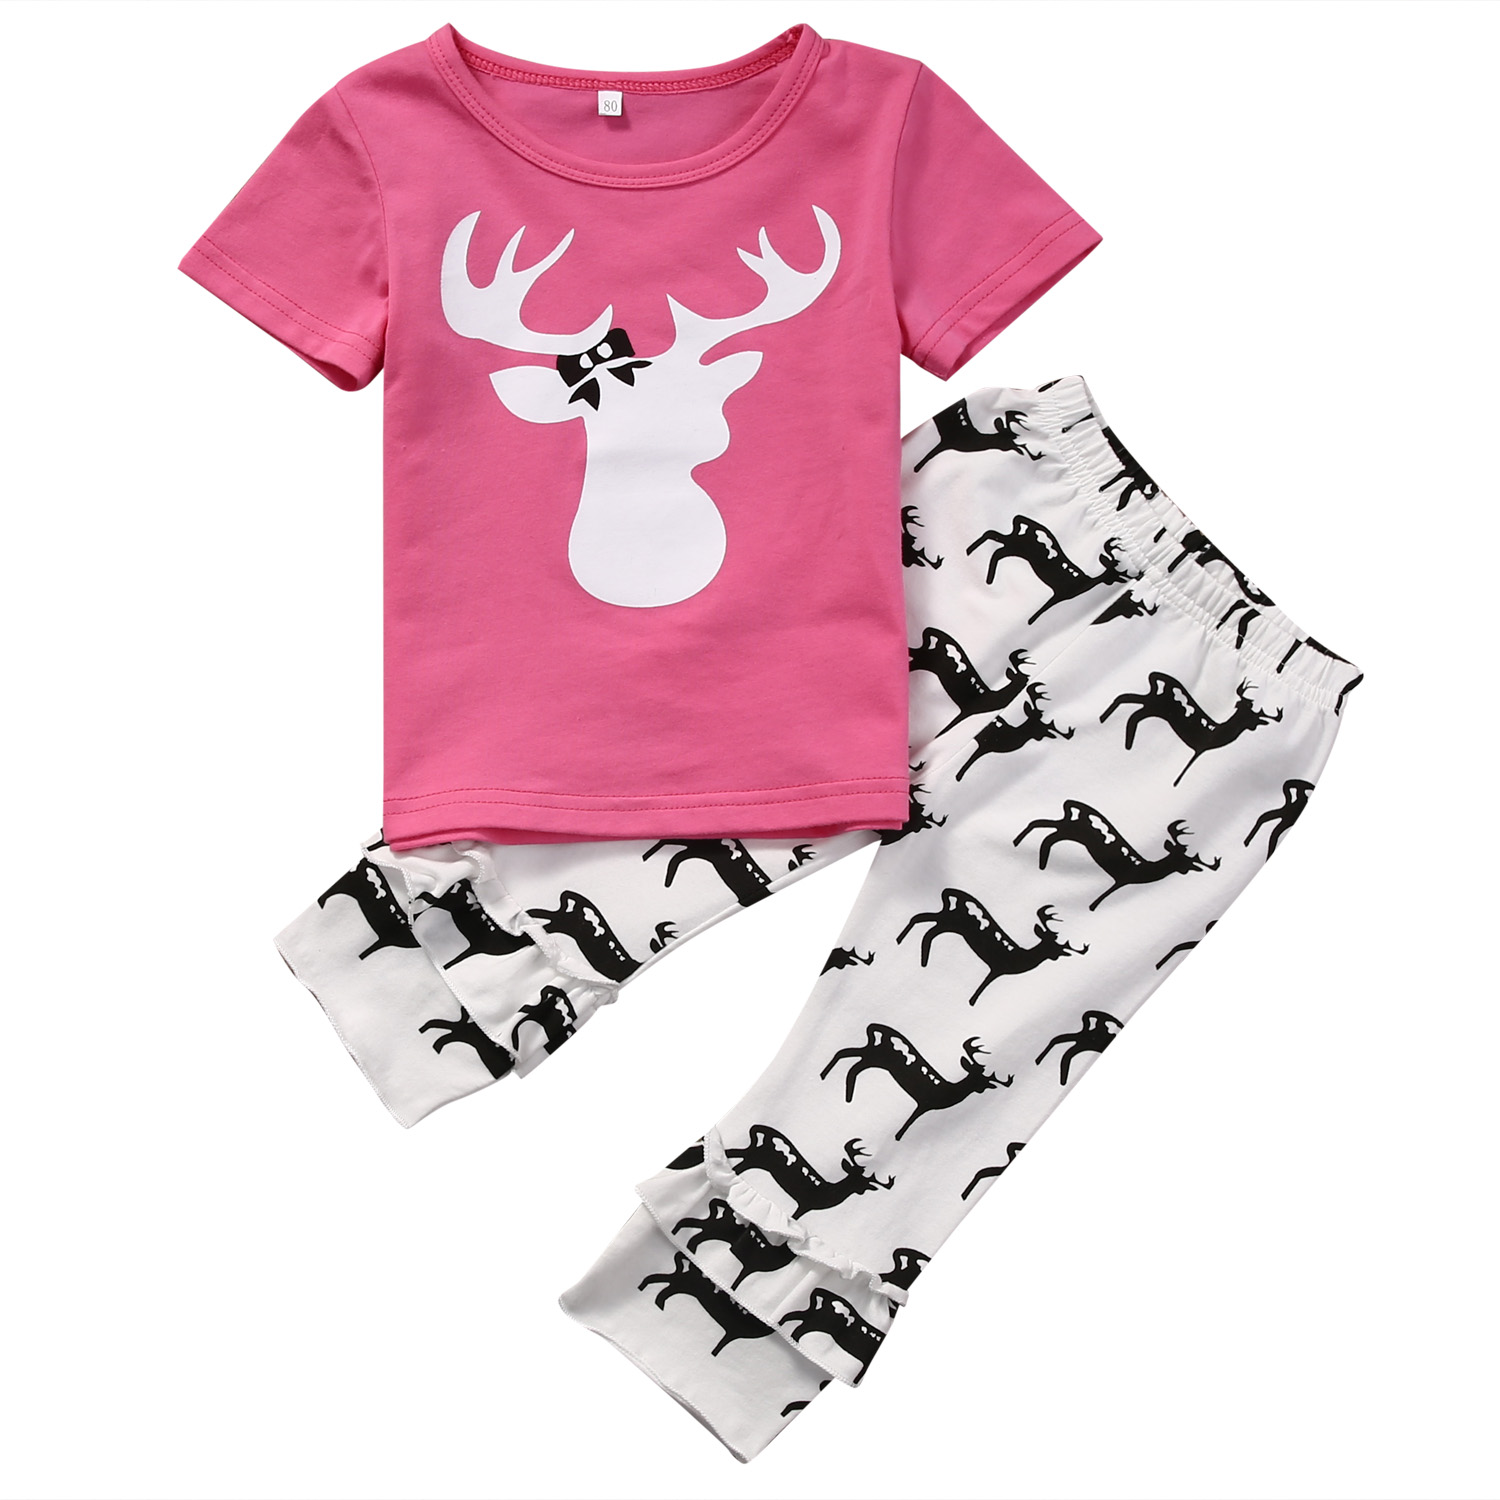 2PCS Newborn Infant Baby Girls Deer Short Sleeve Pink T-shirt Tops+Long Pants Leggings Outfits Set Clothes infant newborn baby girls clothes set hooded tops long sleeve t shirt floral long leggings outfit children clothing autumn 2pcs